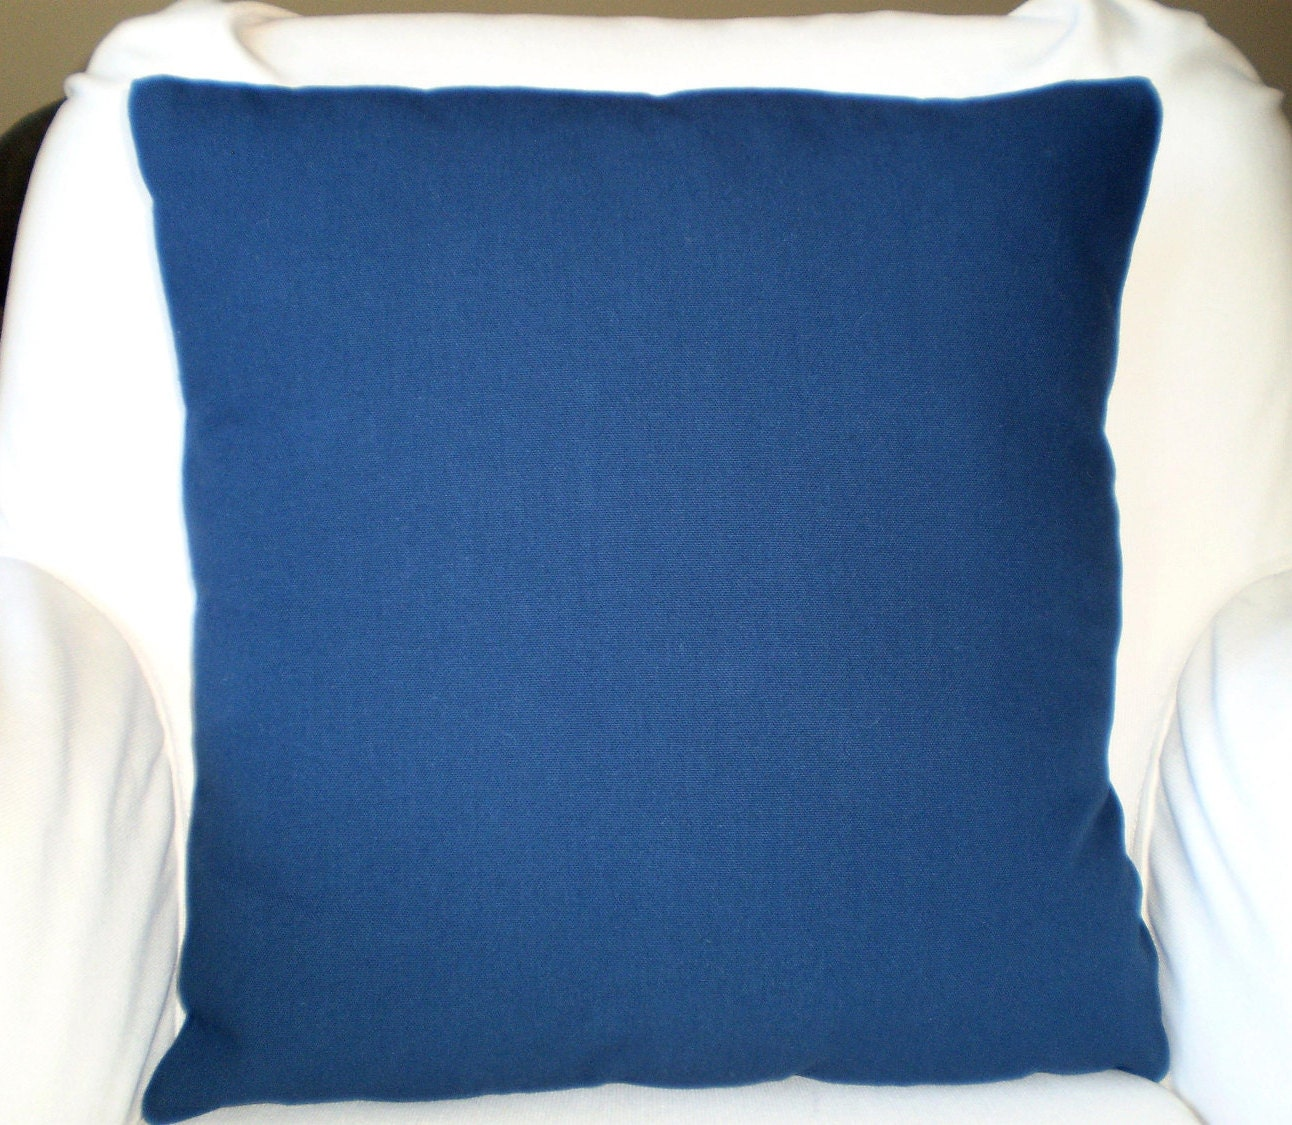 Solid Navy Blue Pillow Cover Decorative by PillowCushionCovers